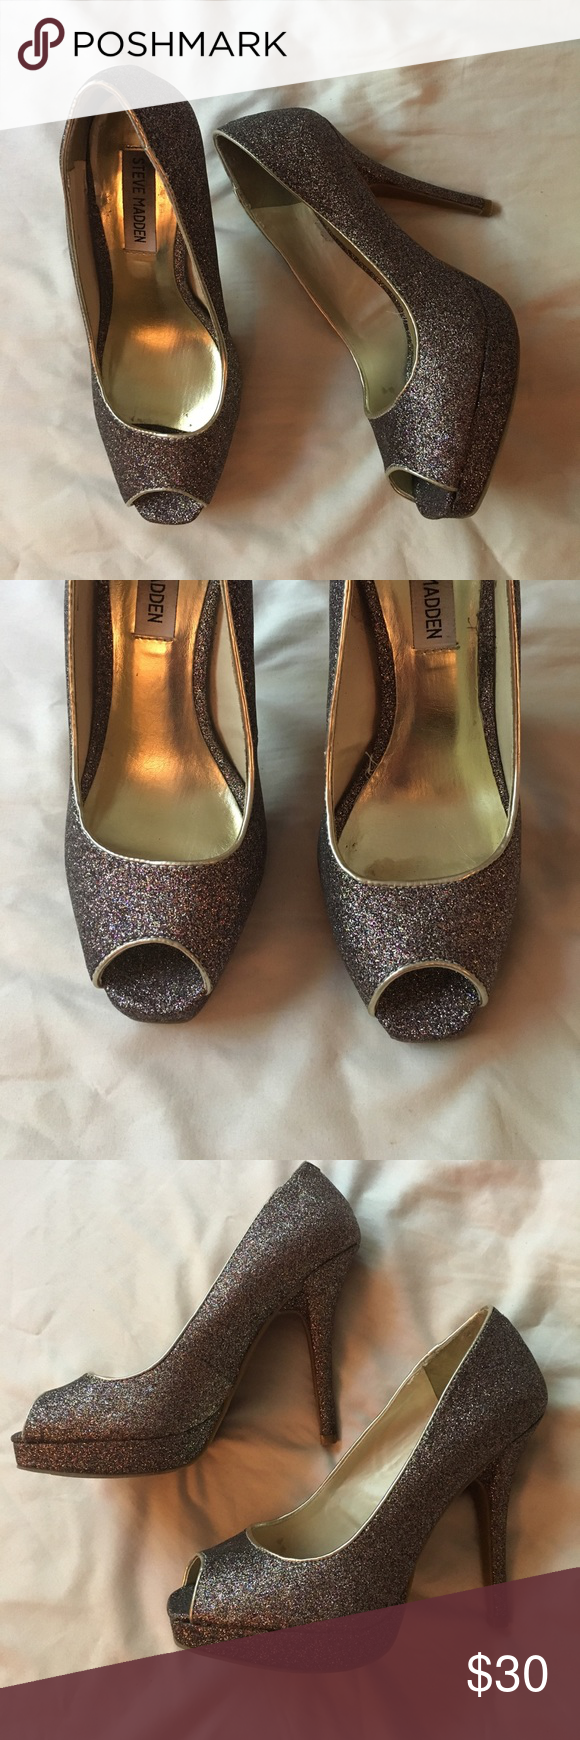 Peep toe sparkle pumps! Gorgeous Steve Madden peep toe heels. Inner lining and border is gold, and the rest is really pretty dark sparkles. Worn, but in good condition. No wear on heels. The inner lining has some marks (all pictured) Steve Madden Shoes Heels